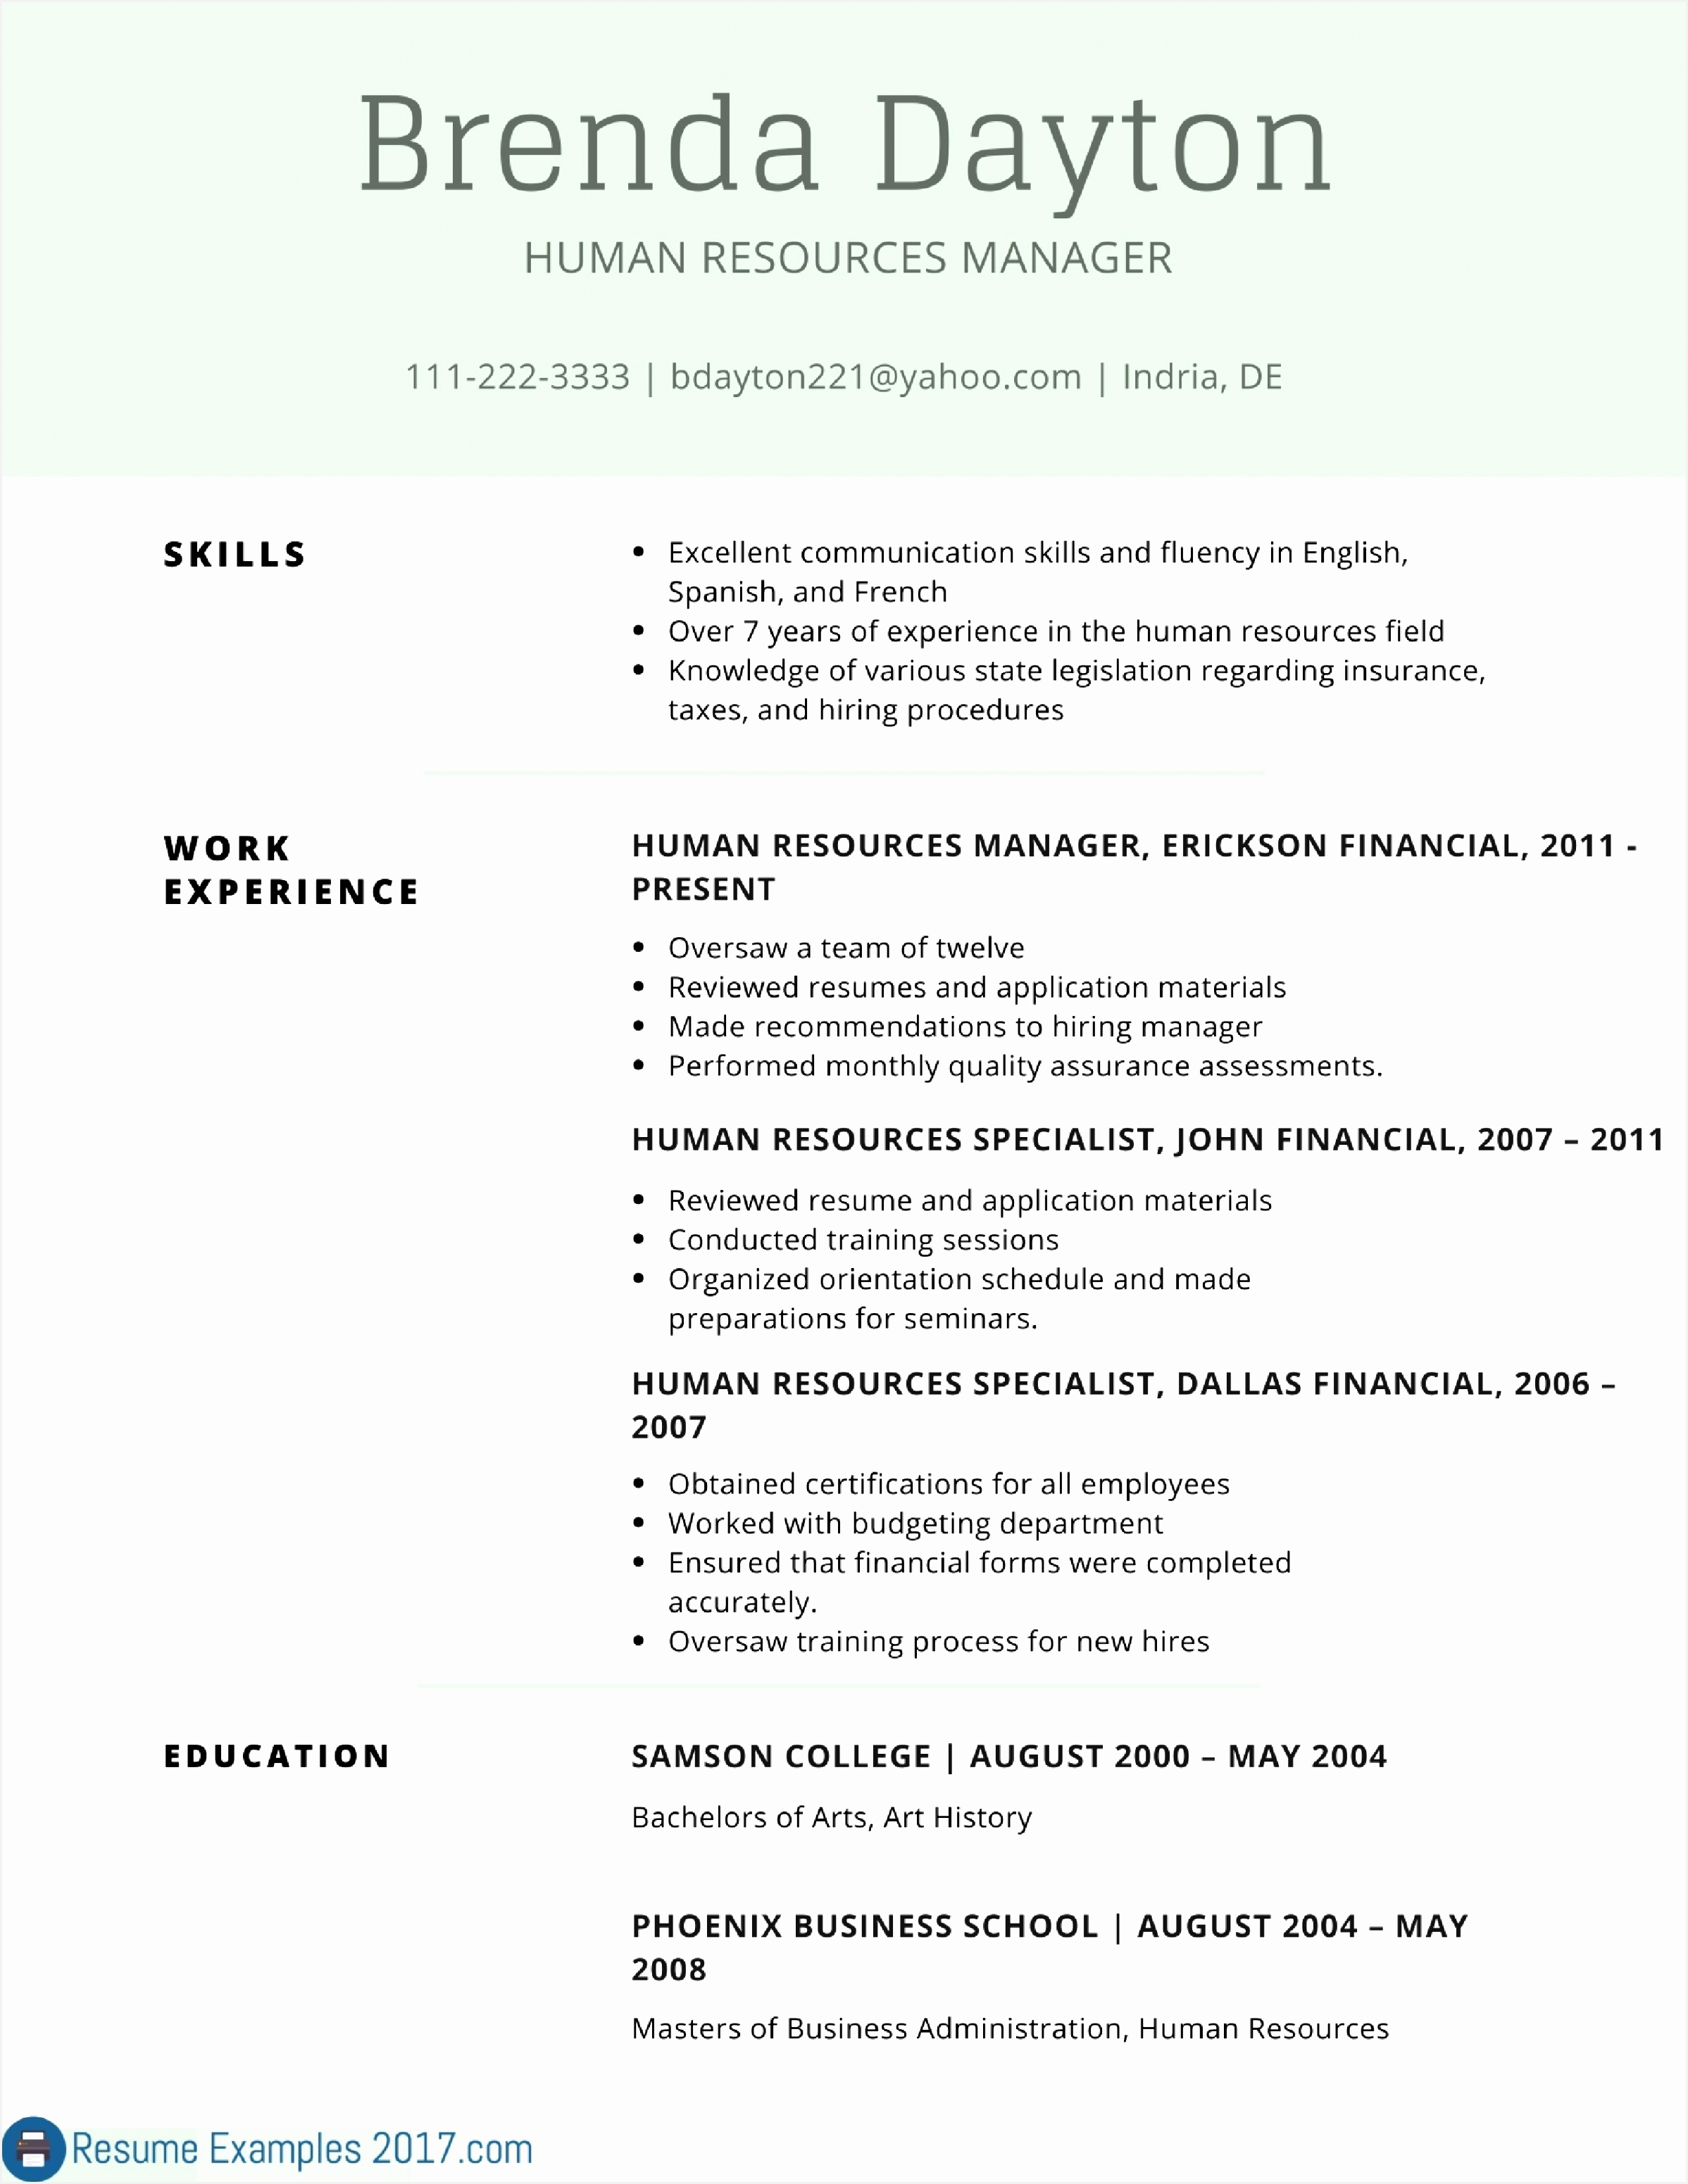 International social Worker Sample Resume Spdhk Inspirational Descriptive Words for Resume Unique 52 Inspirational Resume for Of International social Worker Sample Resume Dfkzk Inspirational Sample Resumes Inspirational What is Resume Fresh Bsw Resume 0d